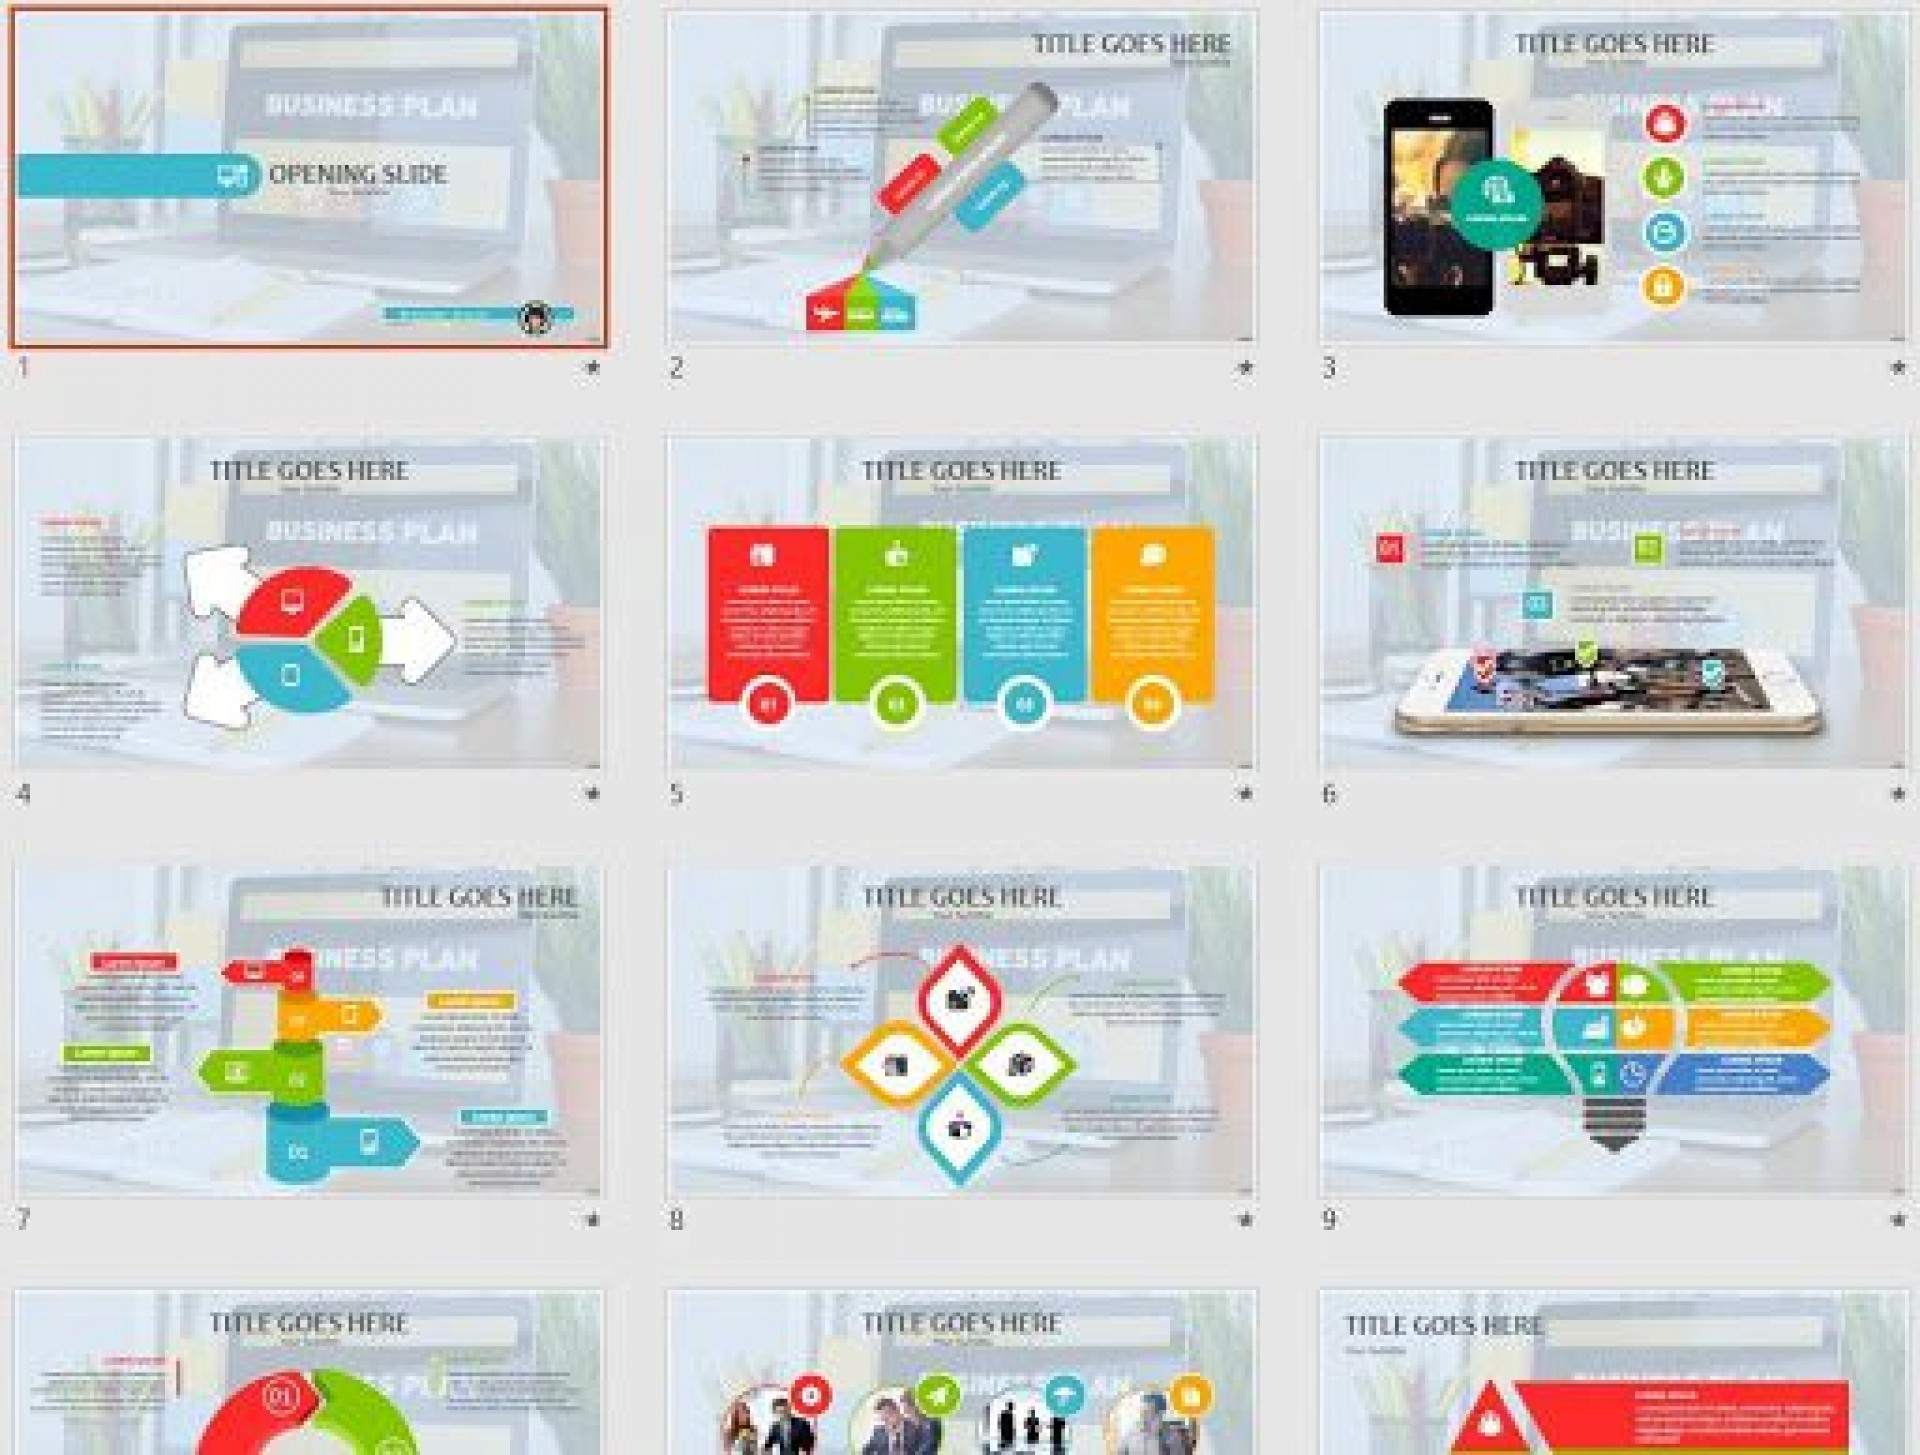 009 Striking Free Busines Plan Powerpoint Template Download High Definition  Modern Ultimate1920